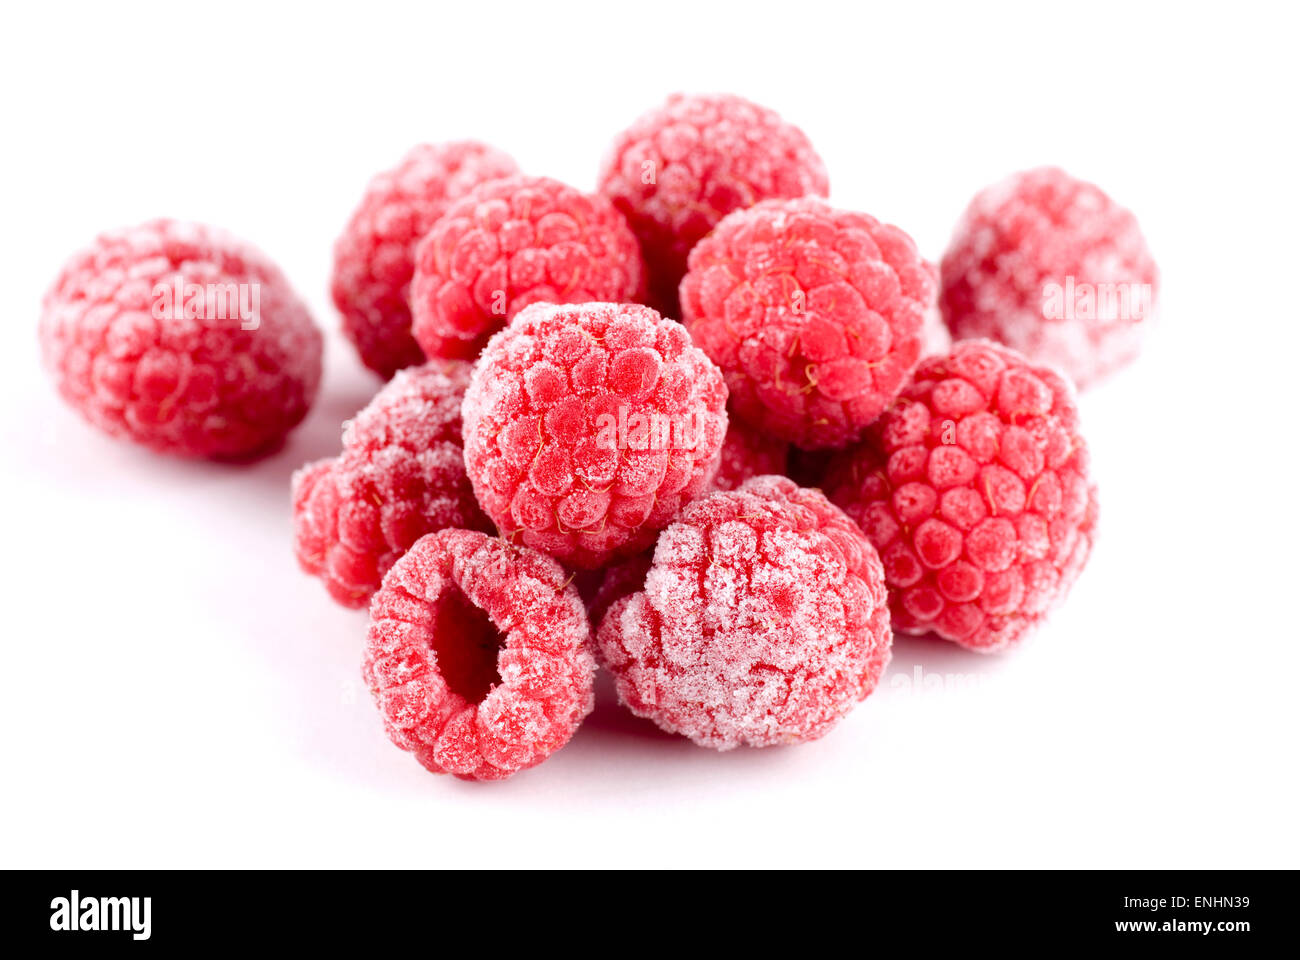 Heap of frozen raspberries close up background. - Stock Image